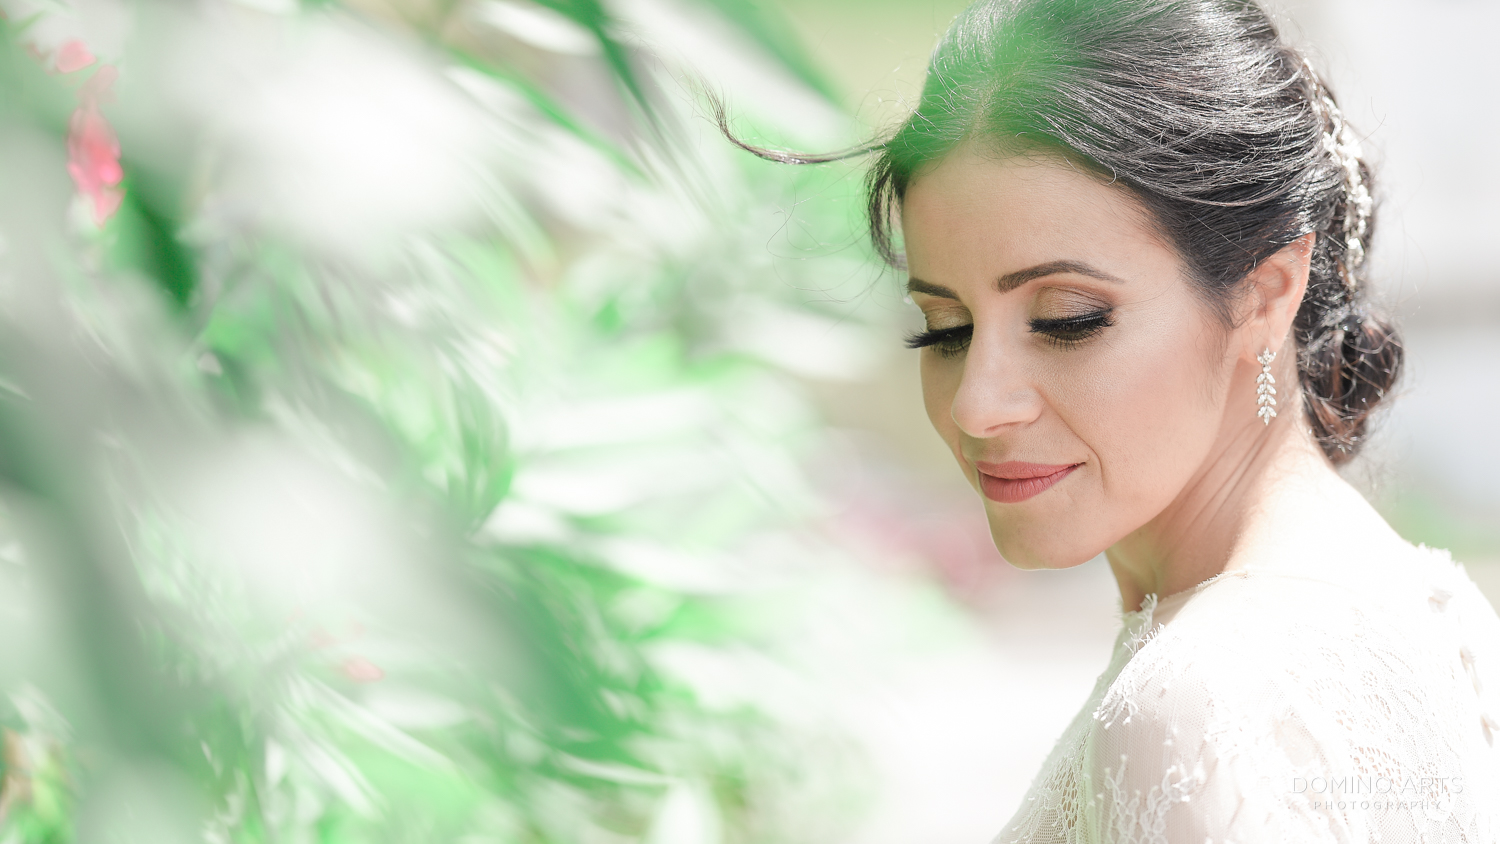 Luxury boutique and romantic wedding photography in Miami South Florida